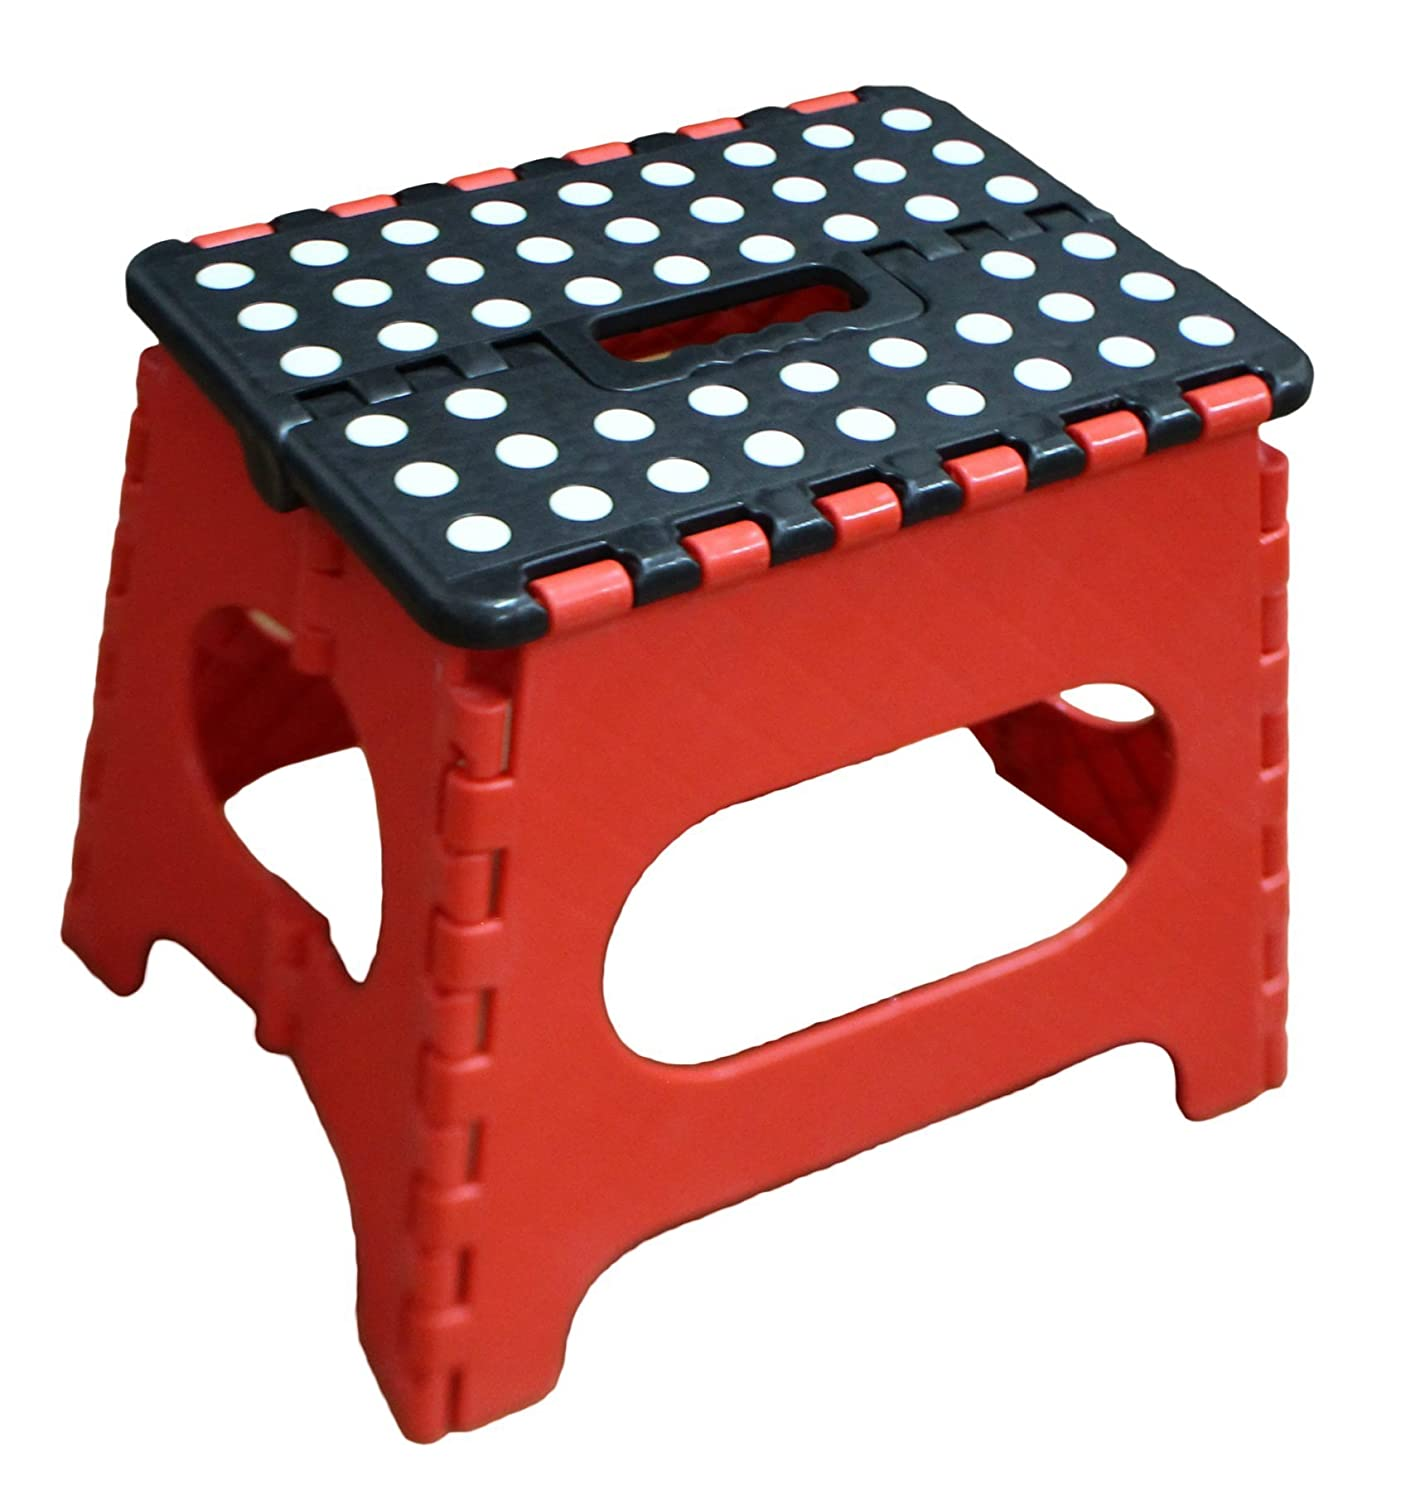 Step Stool Folding Red Strong Kids Adults Foldable Bathroom Kitchen Rv New Ebay